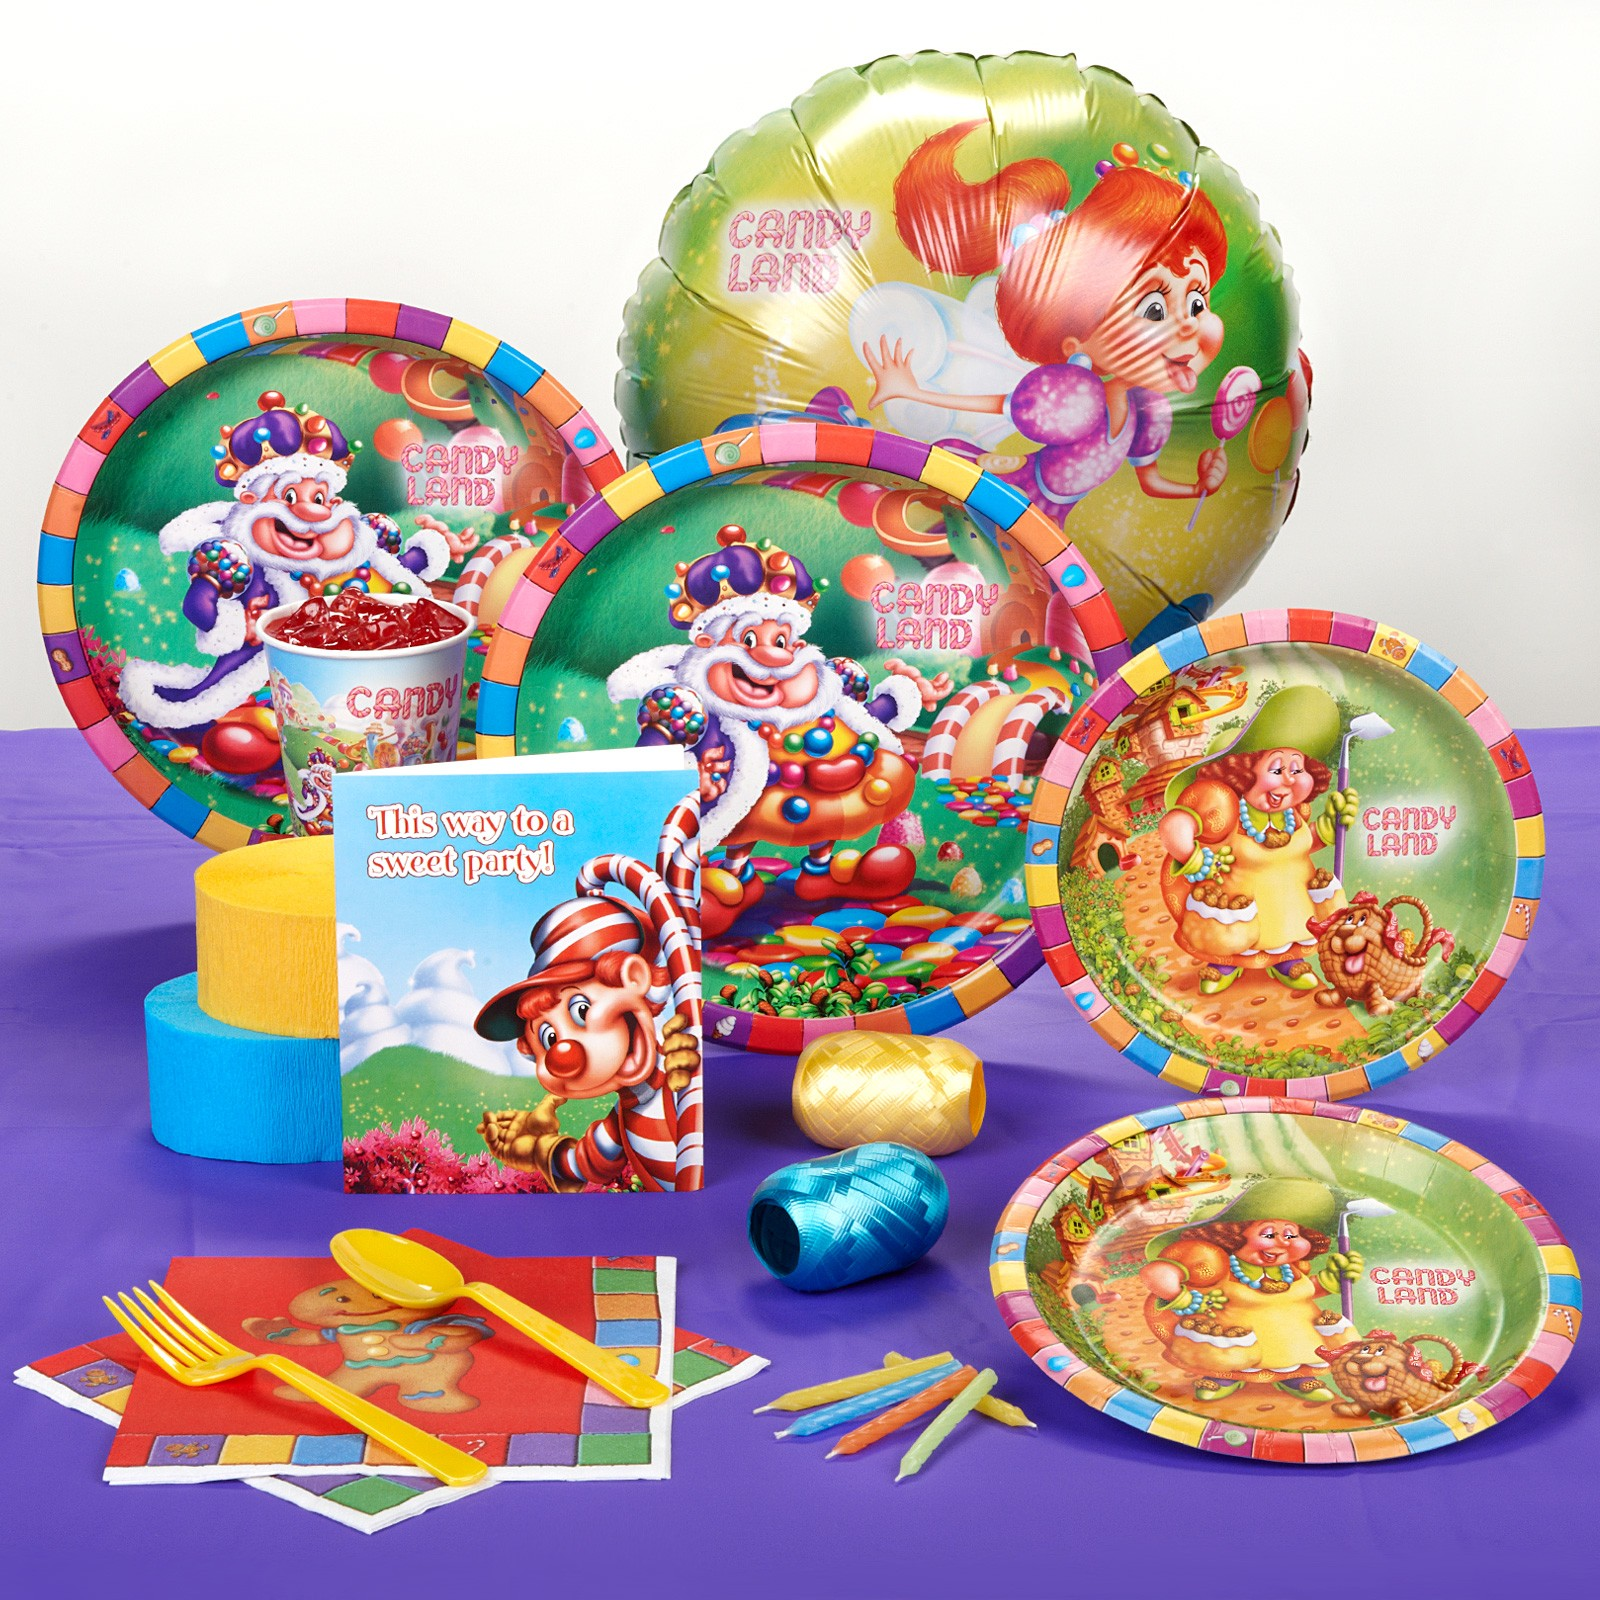 Candy Land Standard Party Pack for 16